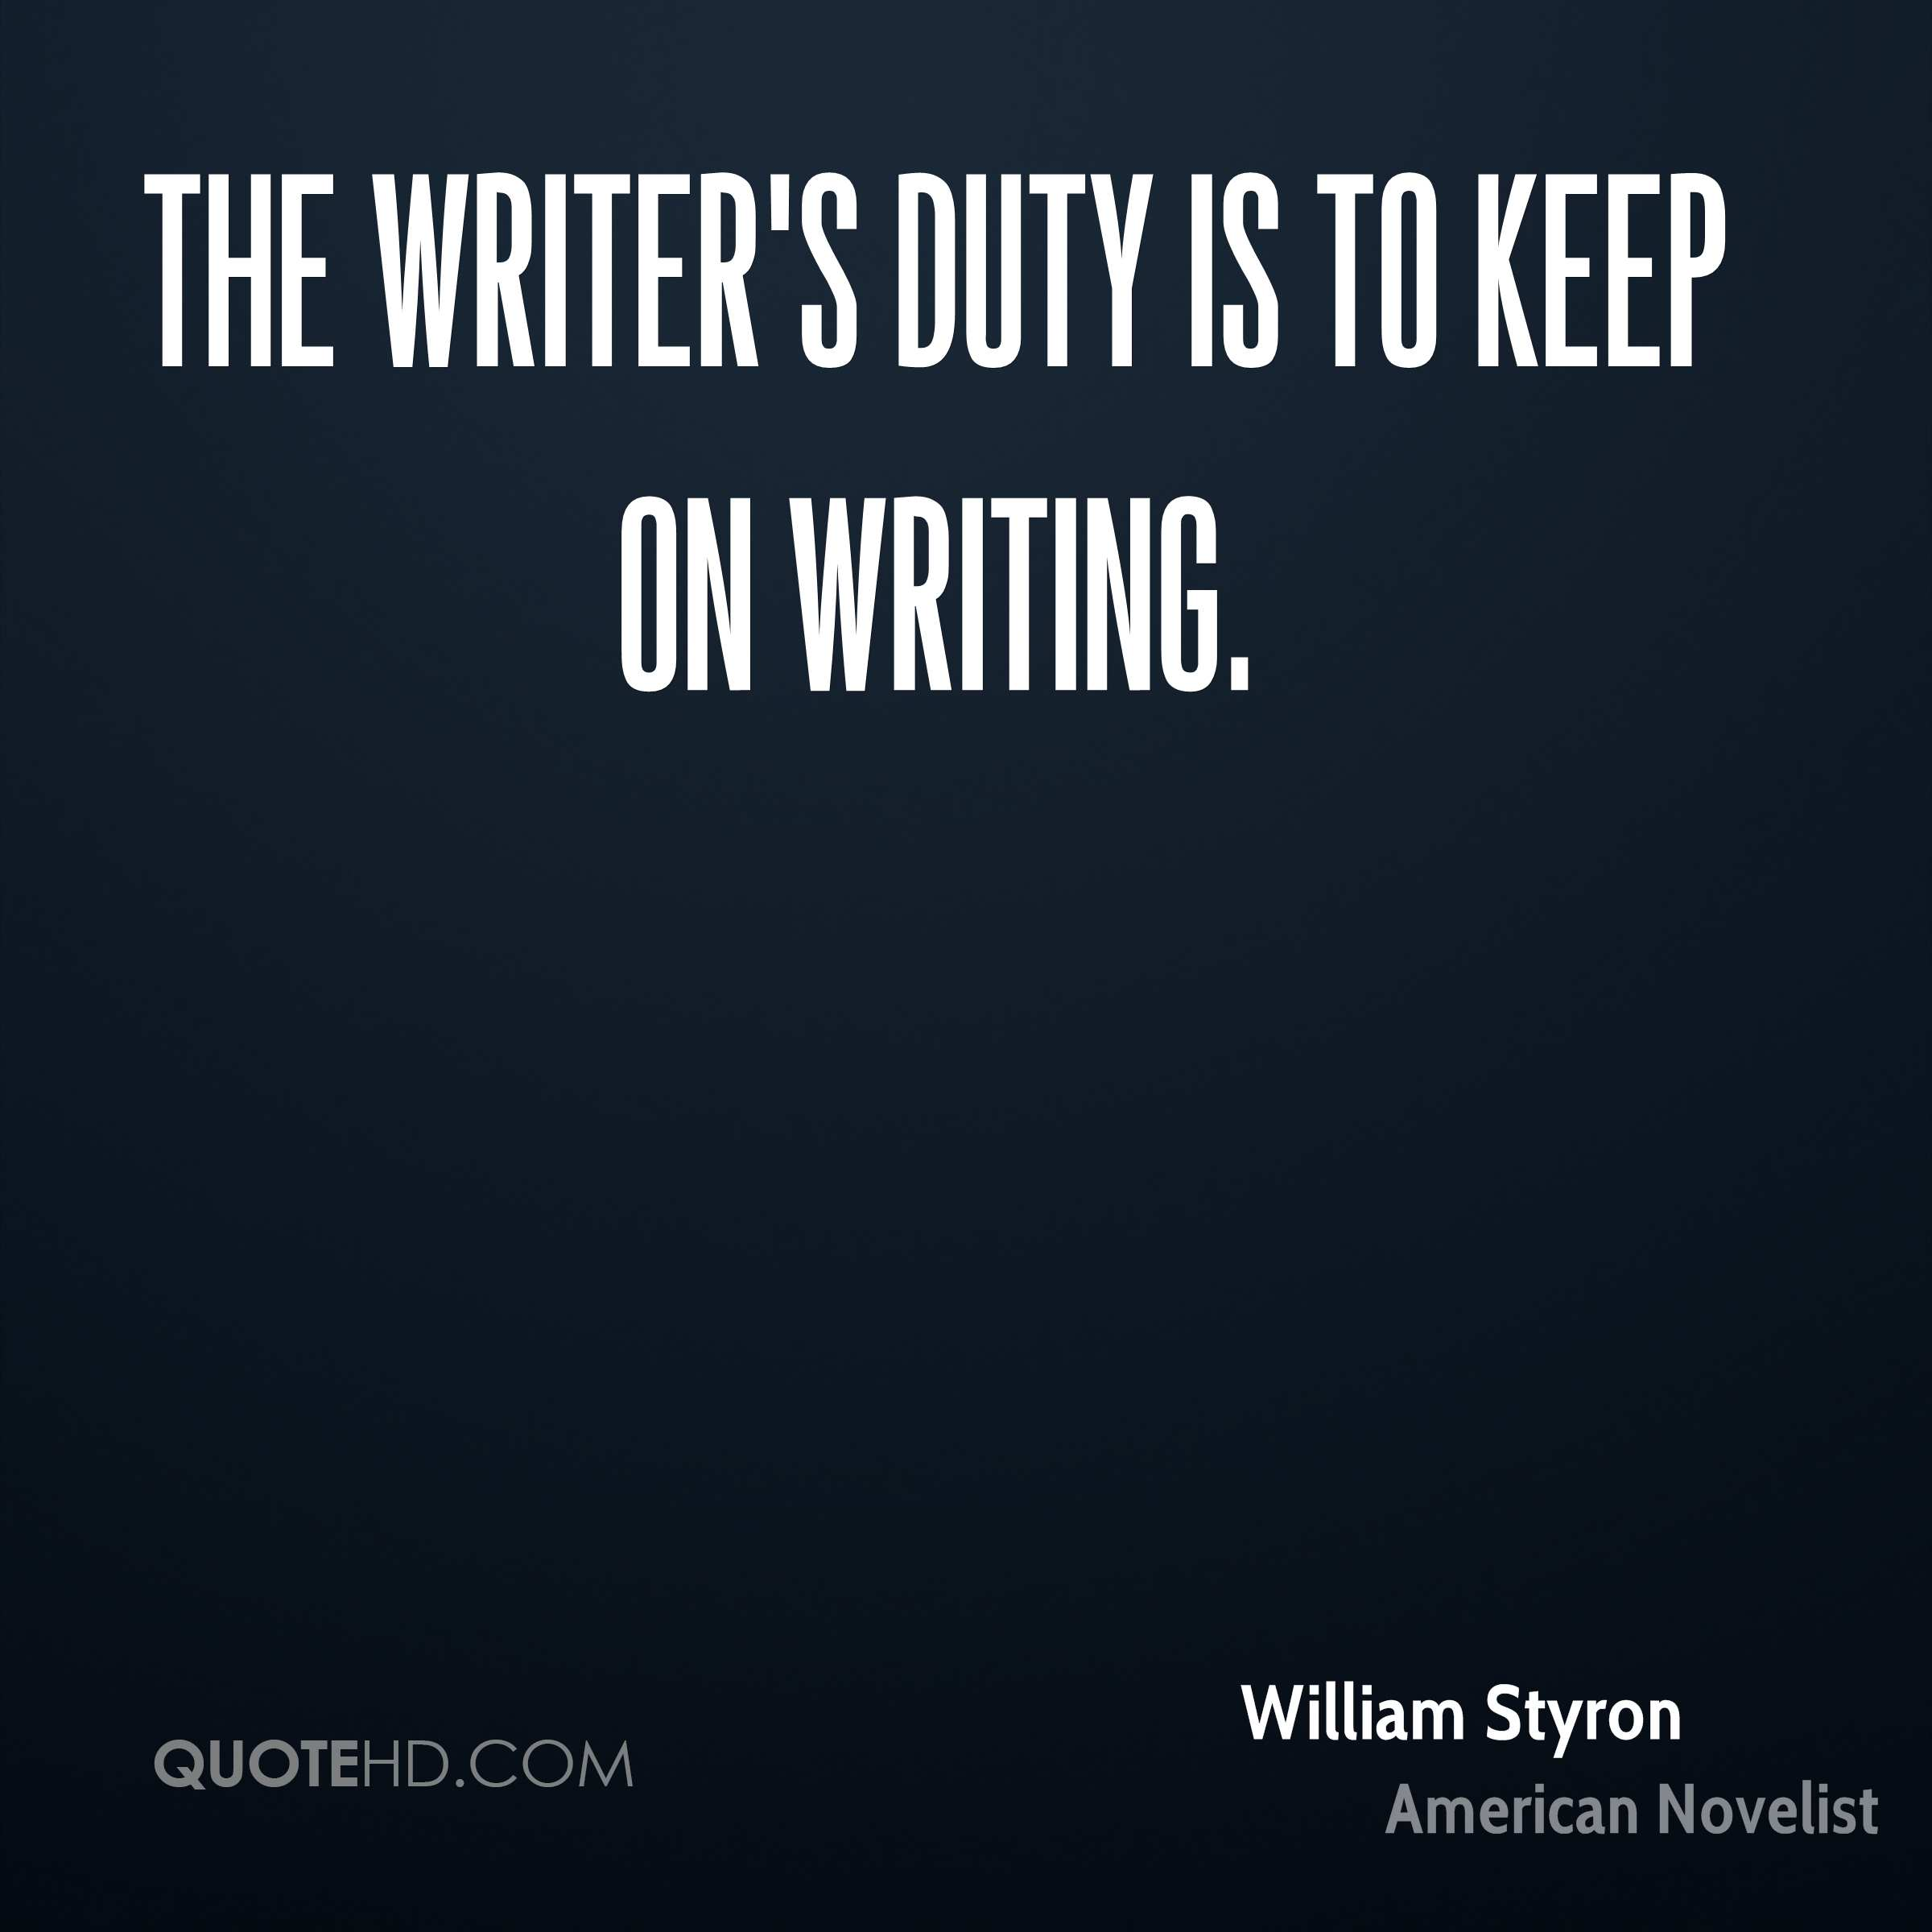 The writer's duty is to keep on writing.